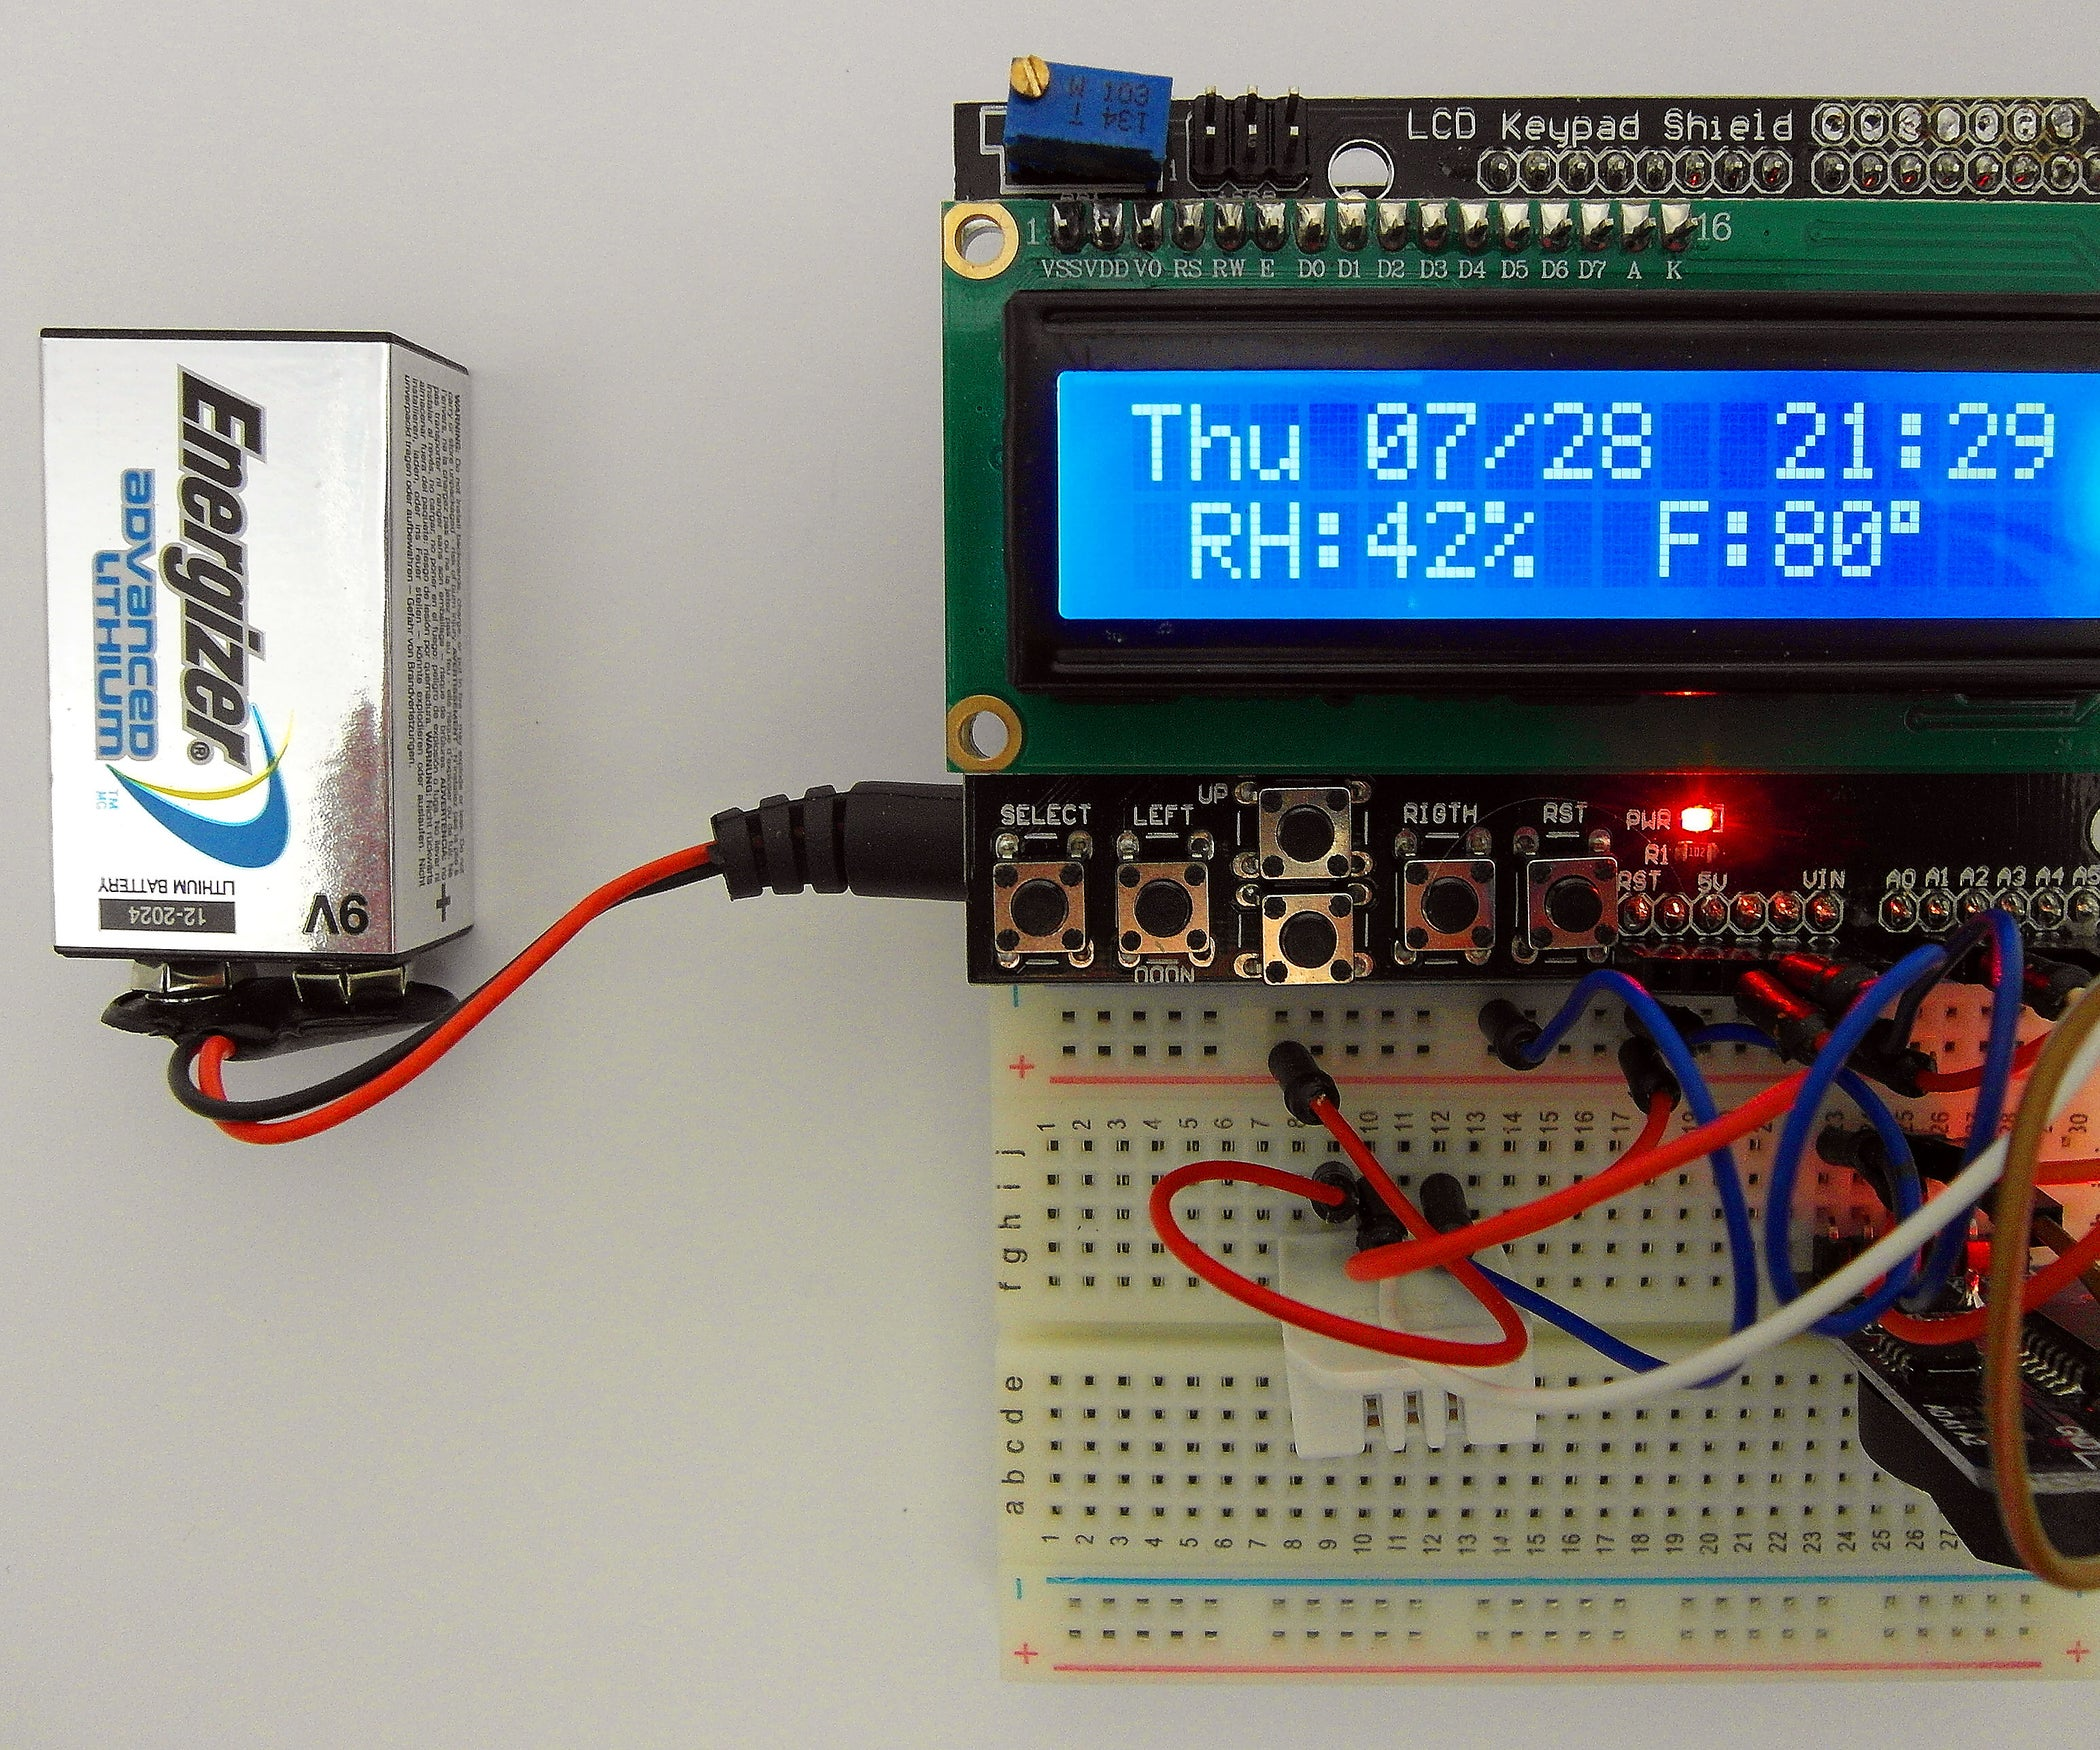 Day of the Week, Calendar, Time, Humidity Temperature W Battery Saver